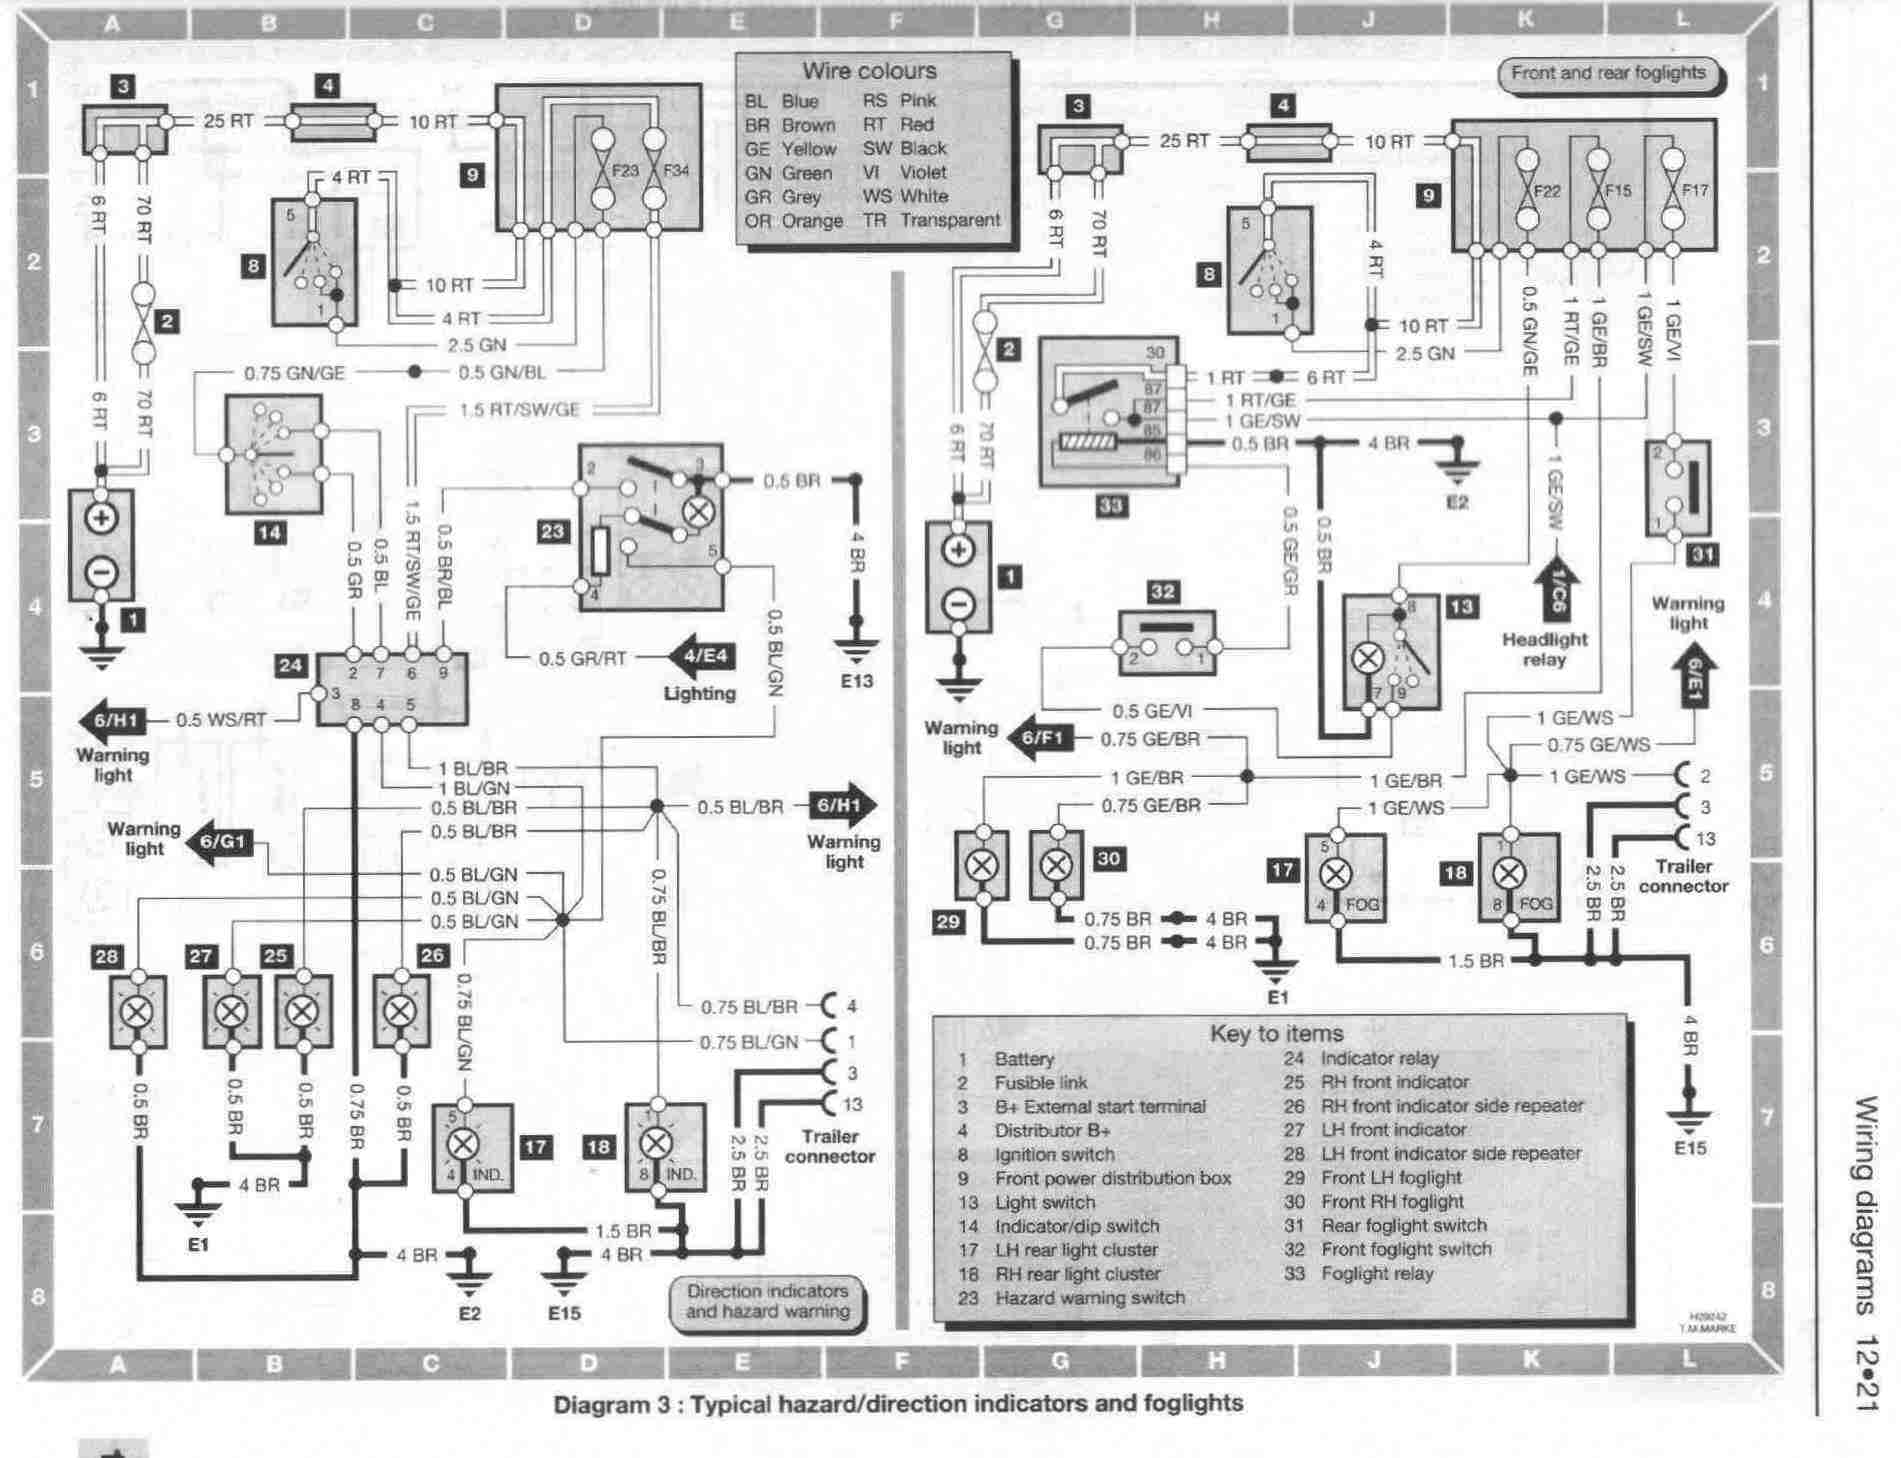 dt466 wire diagram international radio wiring diagram images international wiring diagram discover your wiring electric window wiring diagram 1999 ihc eagle